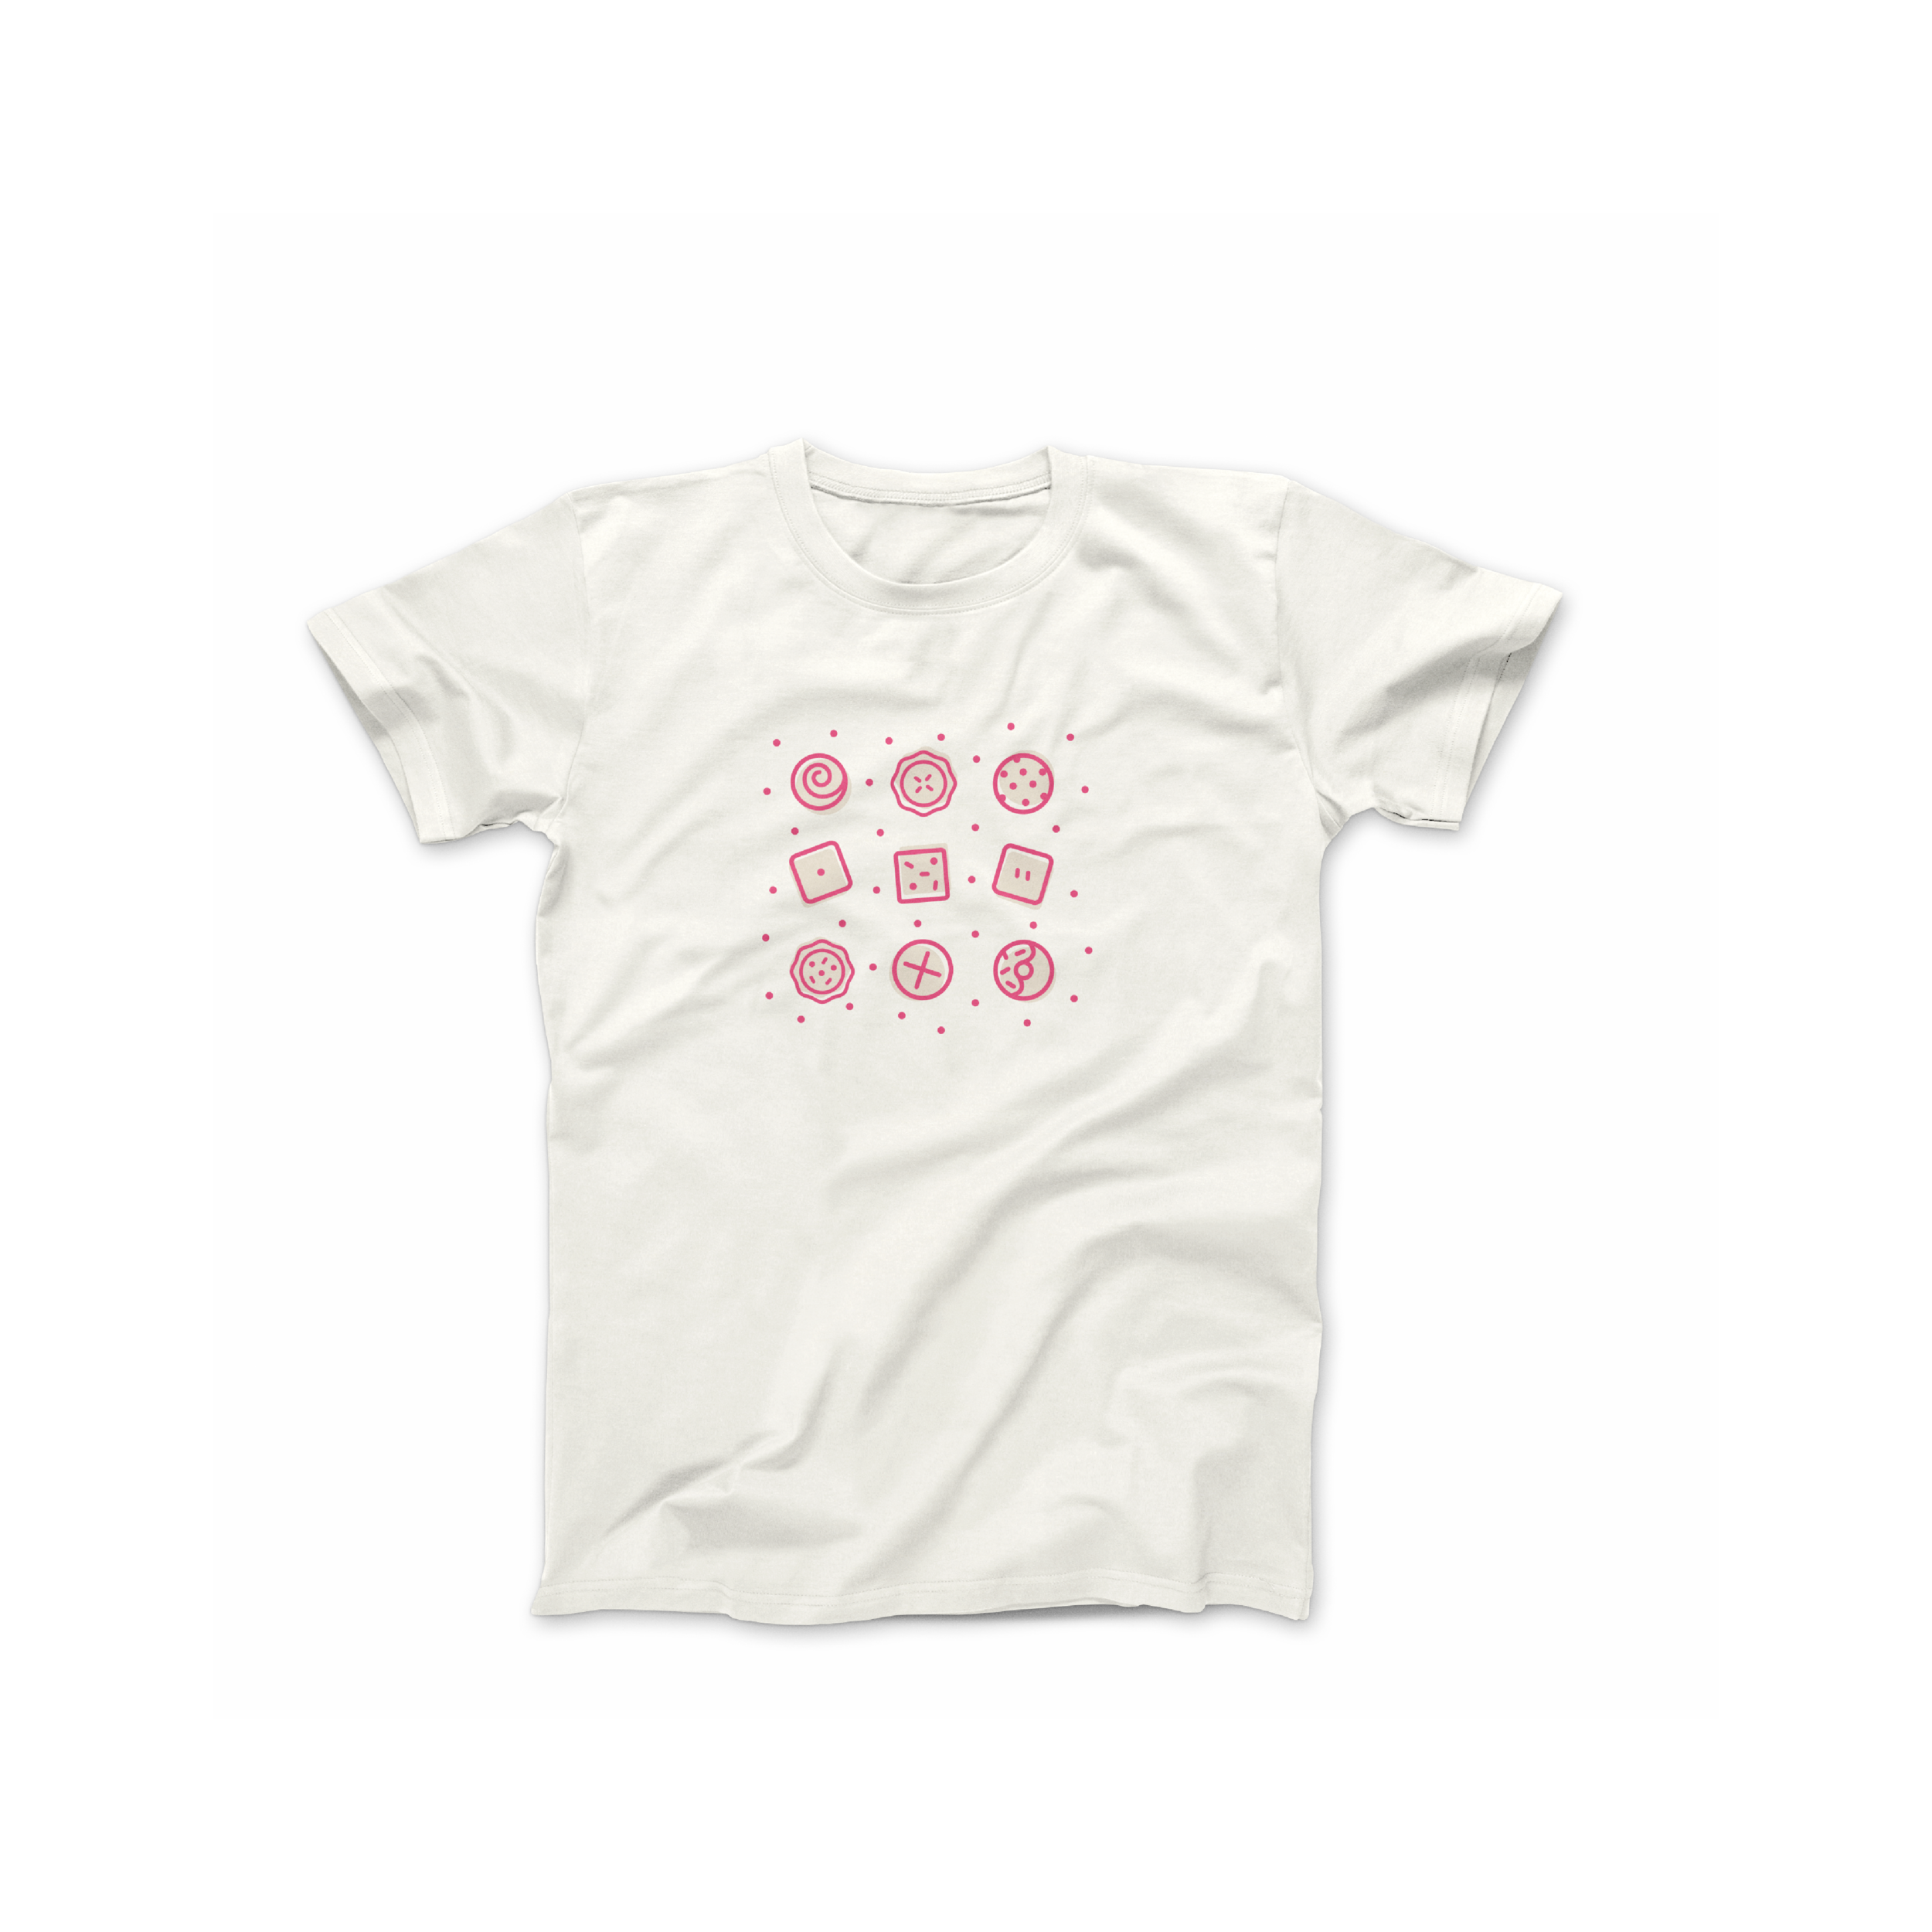 Baked&Wired_shirt.png